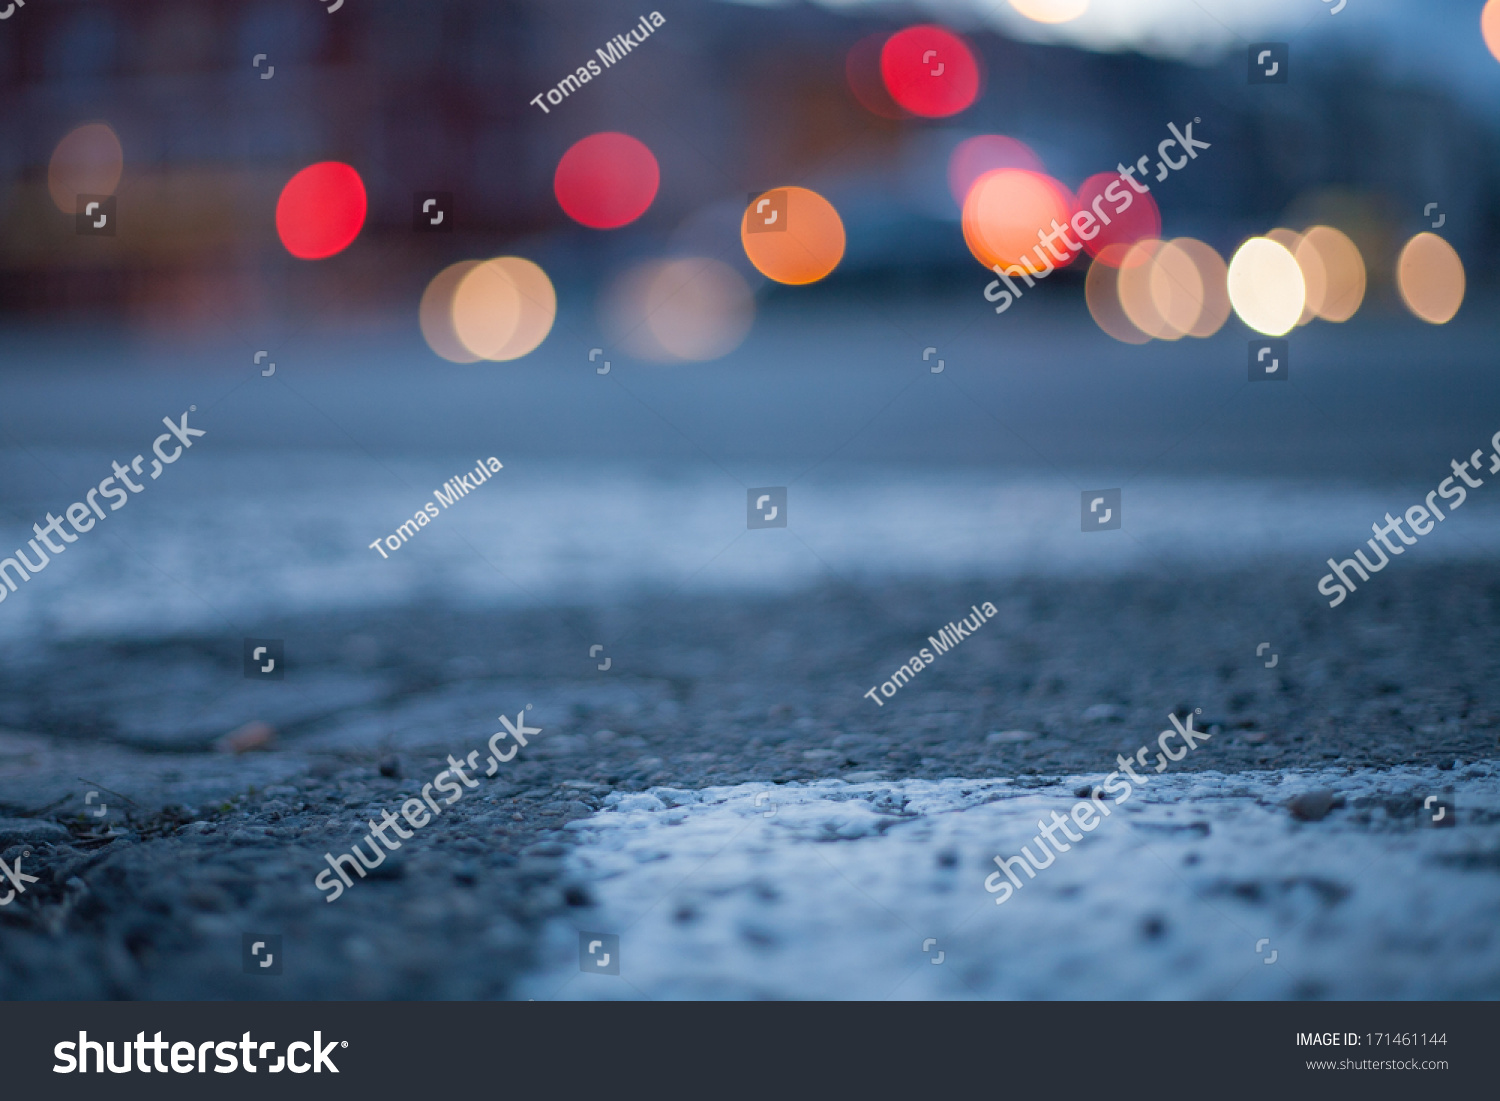 Blurred Background - Night Street With Street Lights ...  Blurred Backgro...